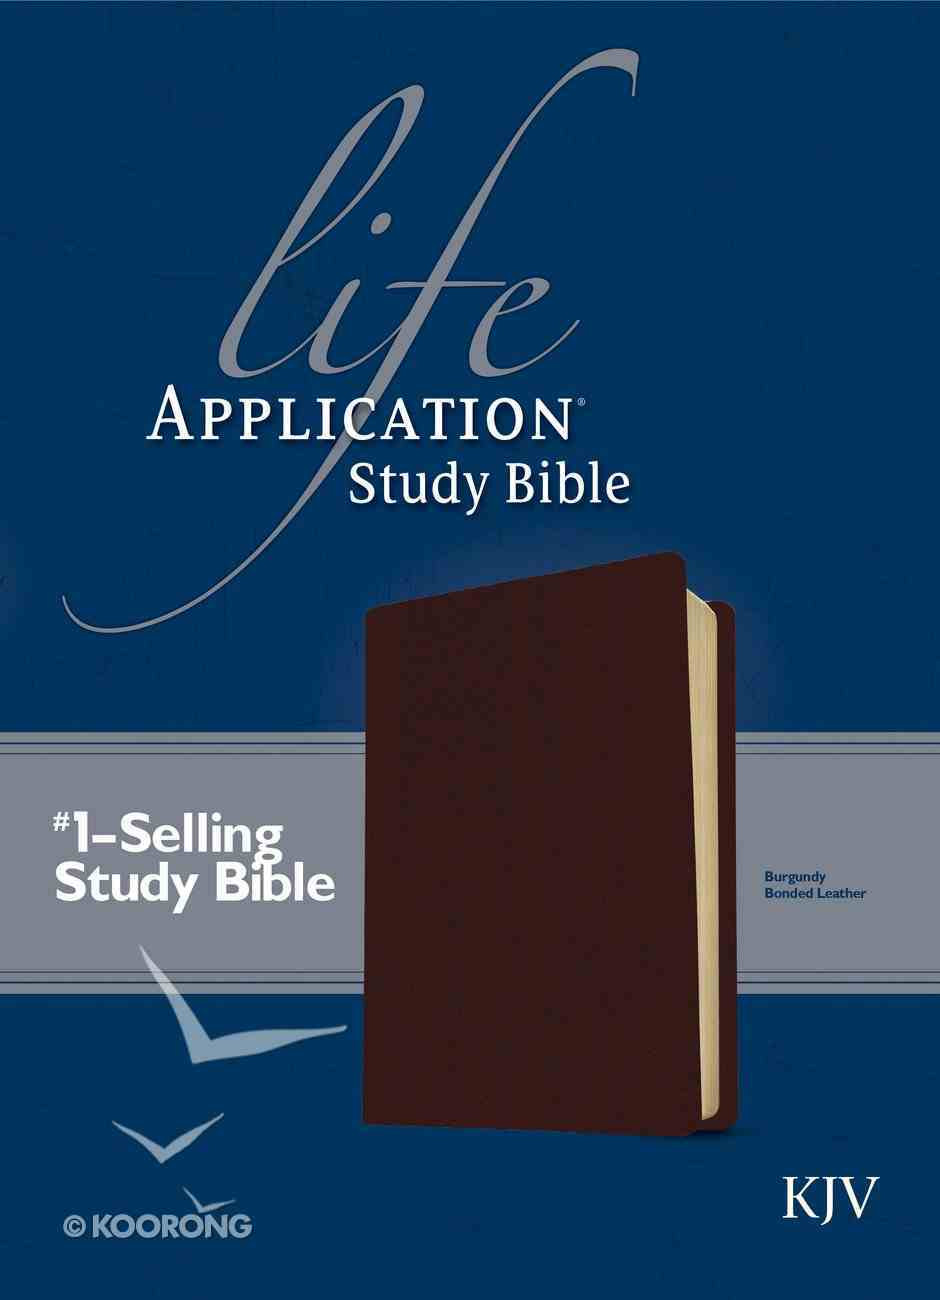 KJV Life Application Study Bible Burgundy 2nd Edition (Red Letter Edition) Bonded Leather